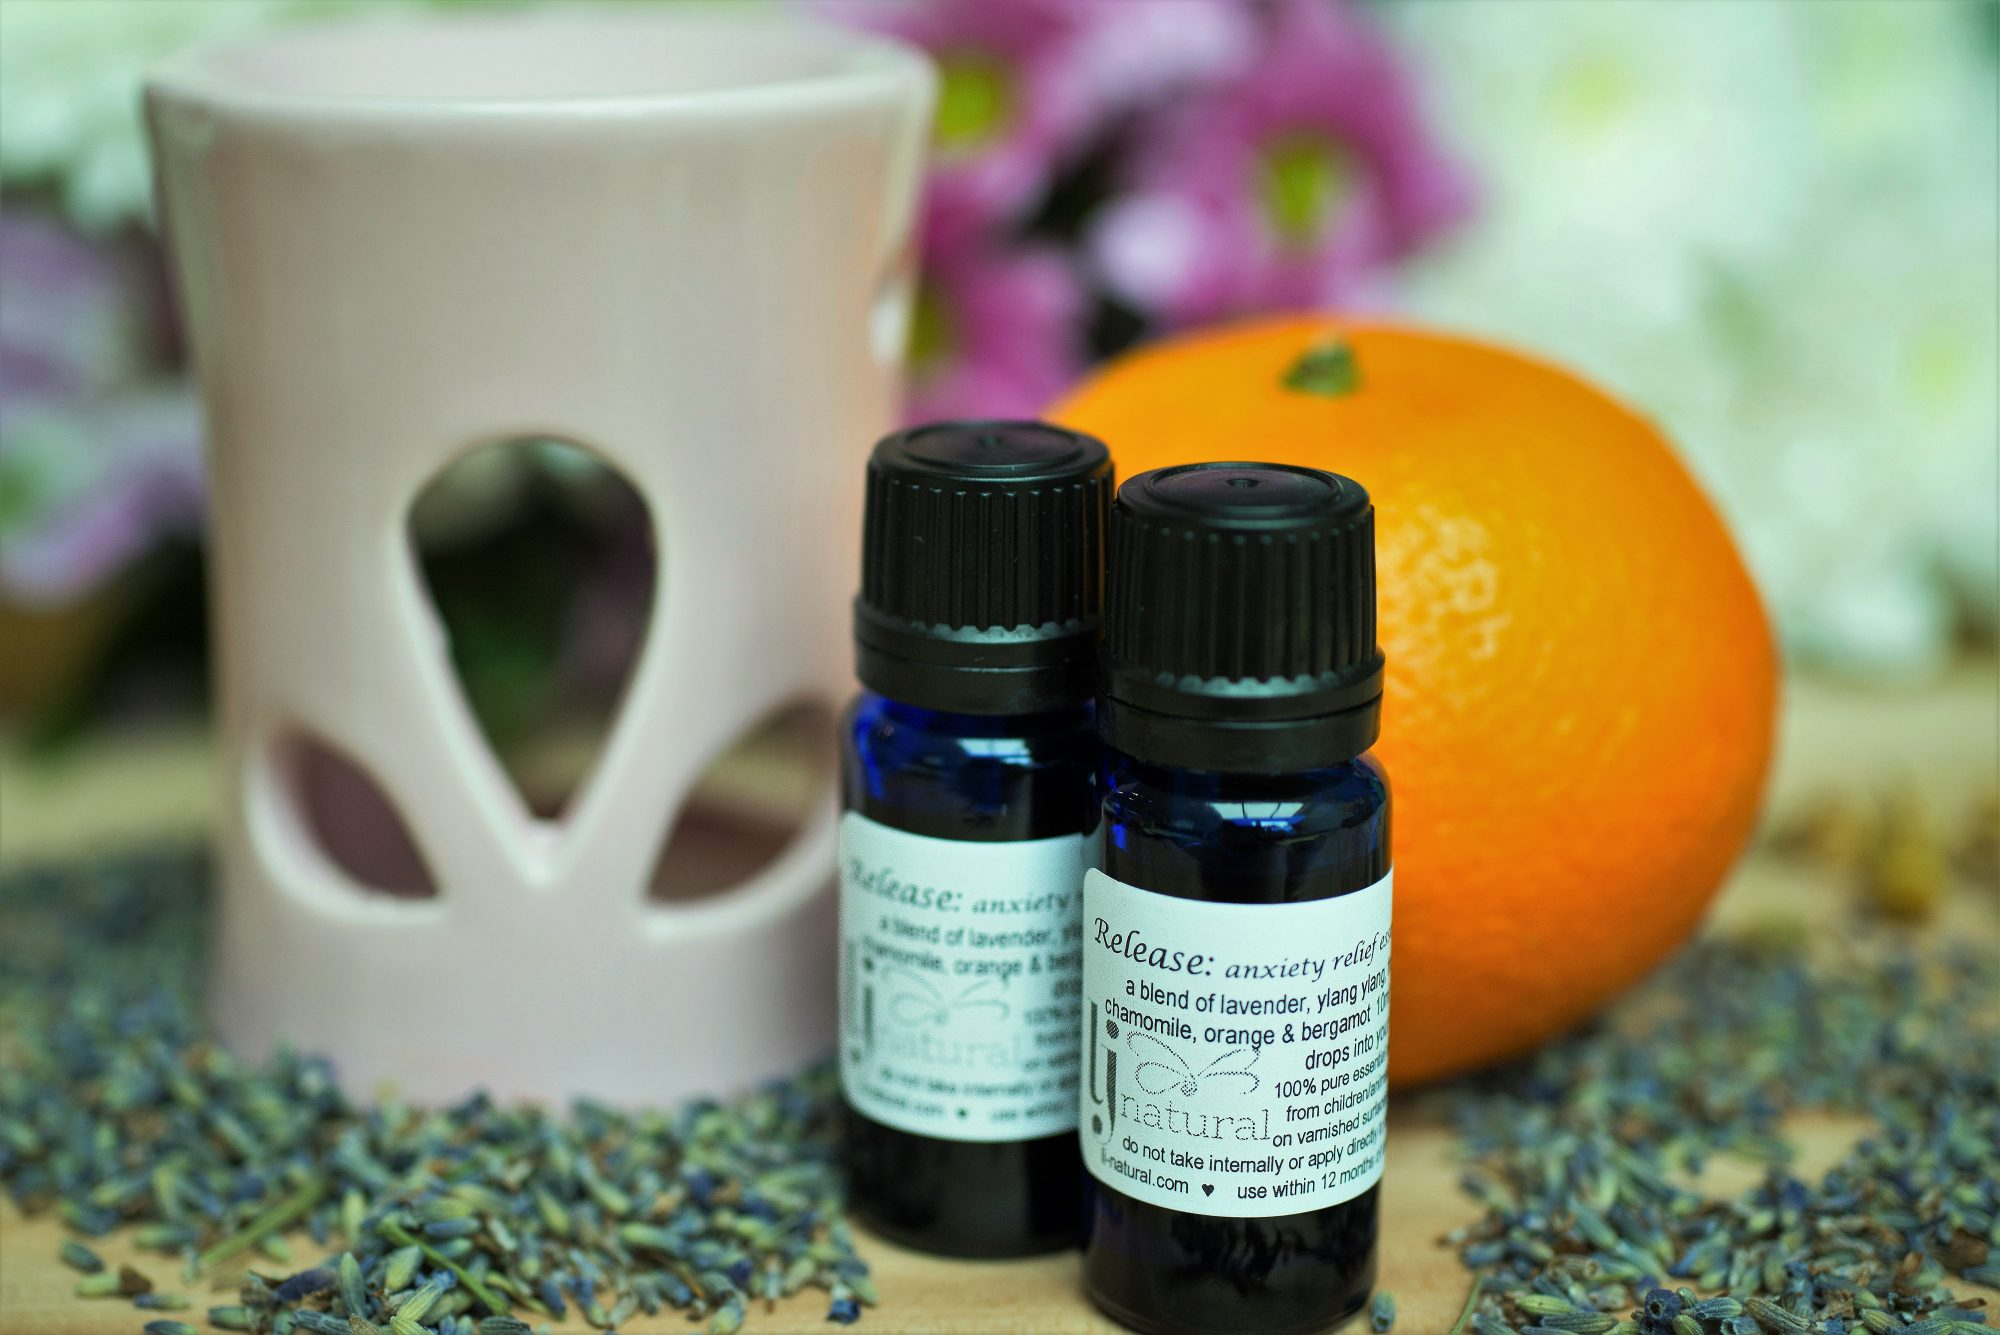 Release: anxiety relief blend - LJ Natural | Organic ...